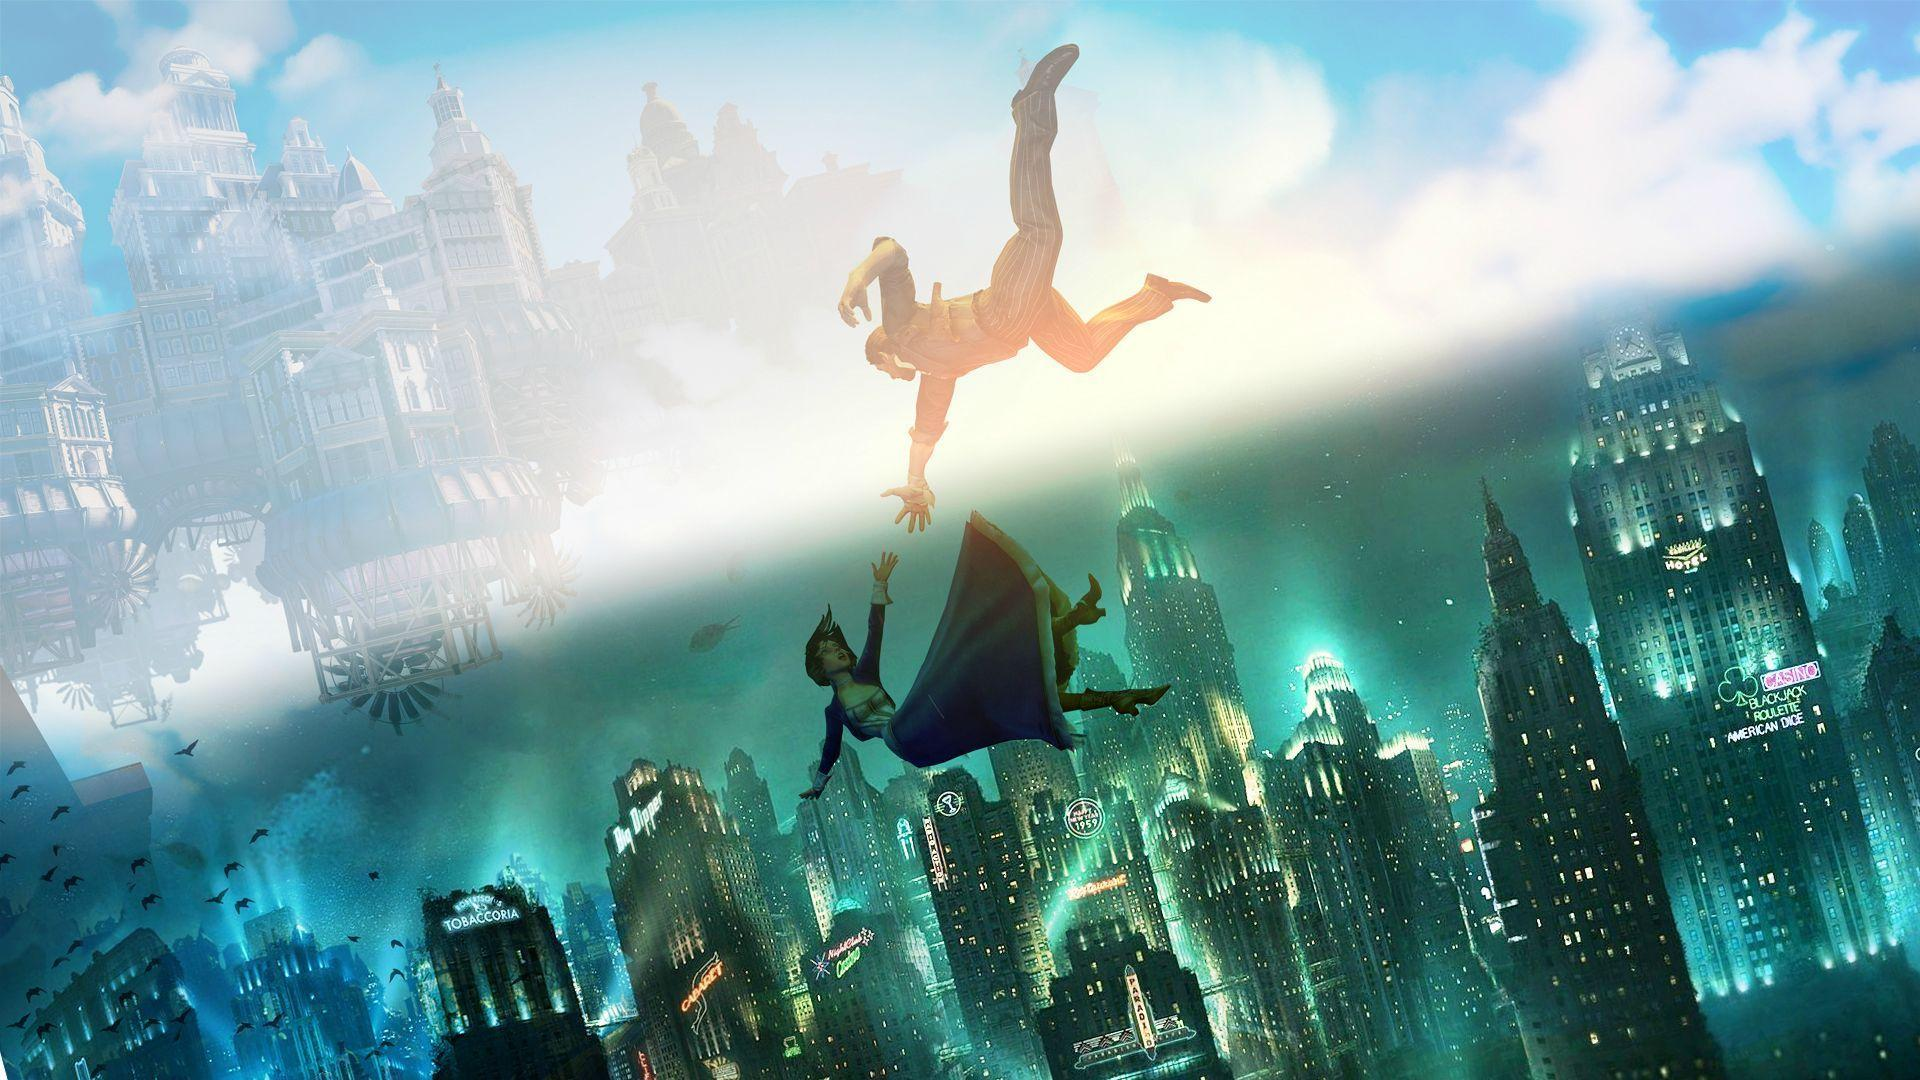 183 Bioshock Infinite Wallpapers